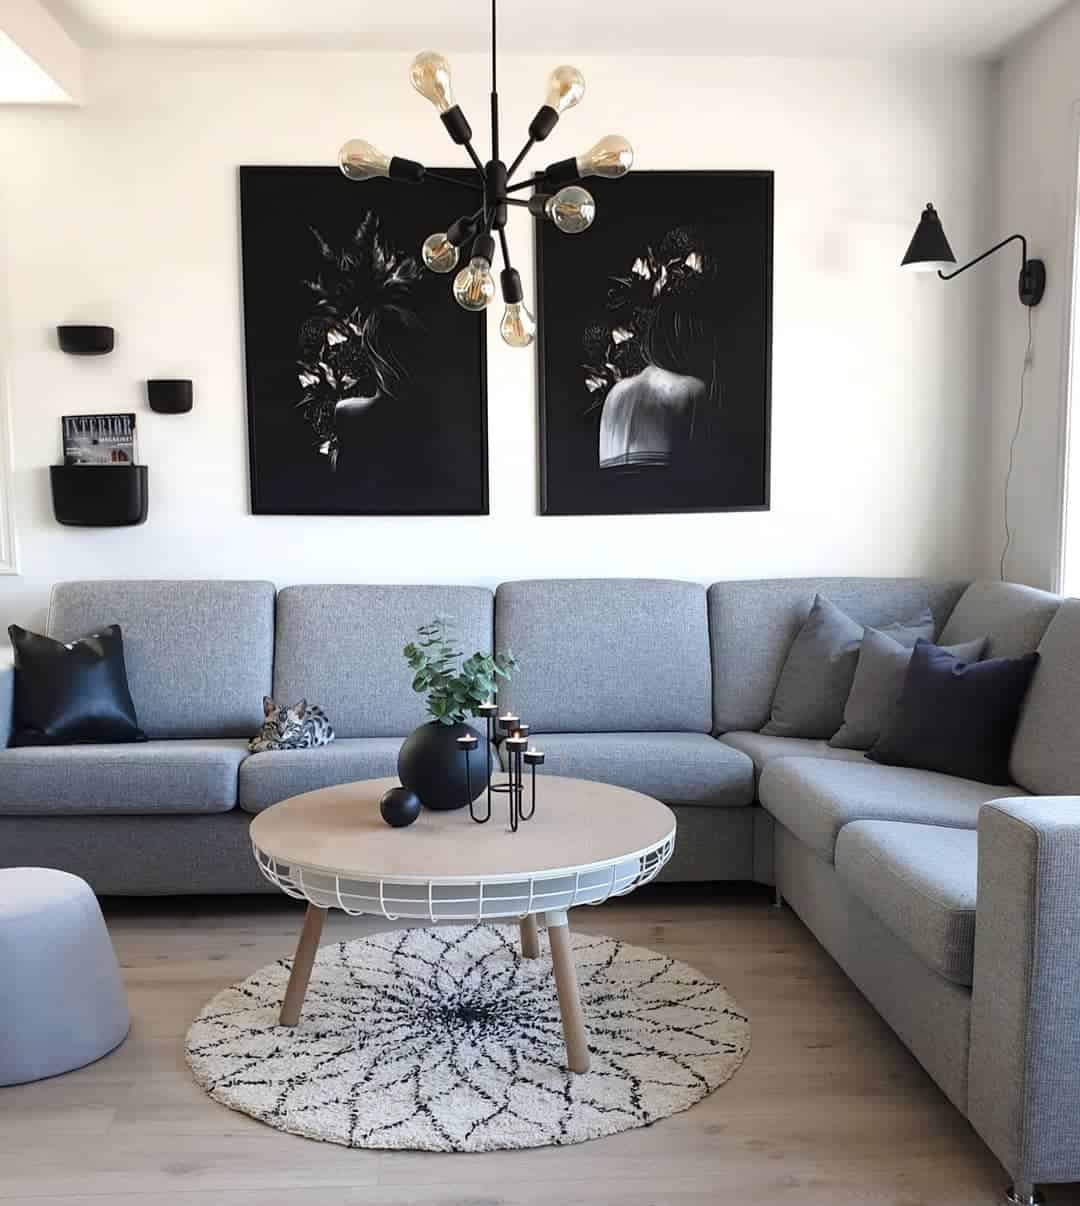 Top 4 Stylish Trends and Ideas For Living Room 2020 (40 ... on Trendy Room  id=73192